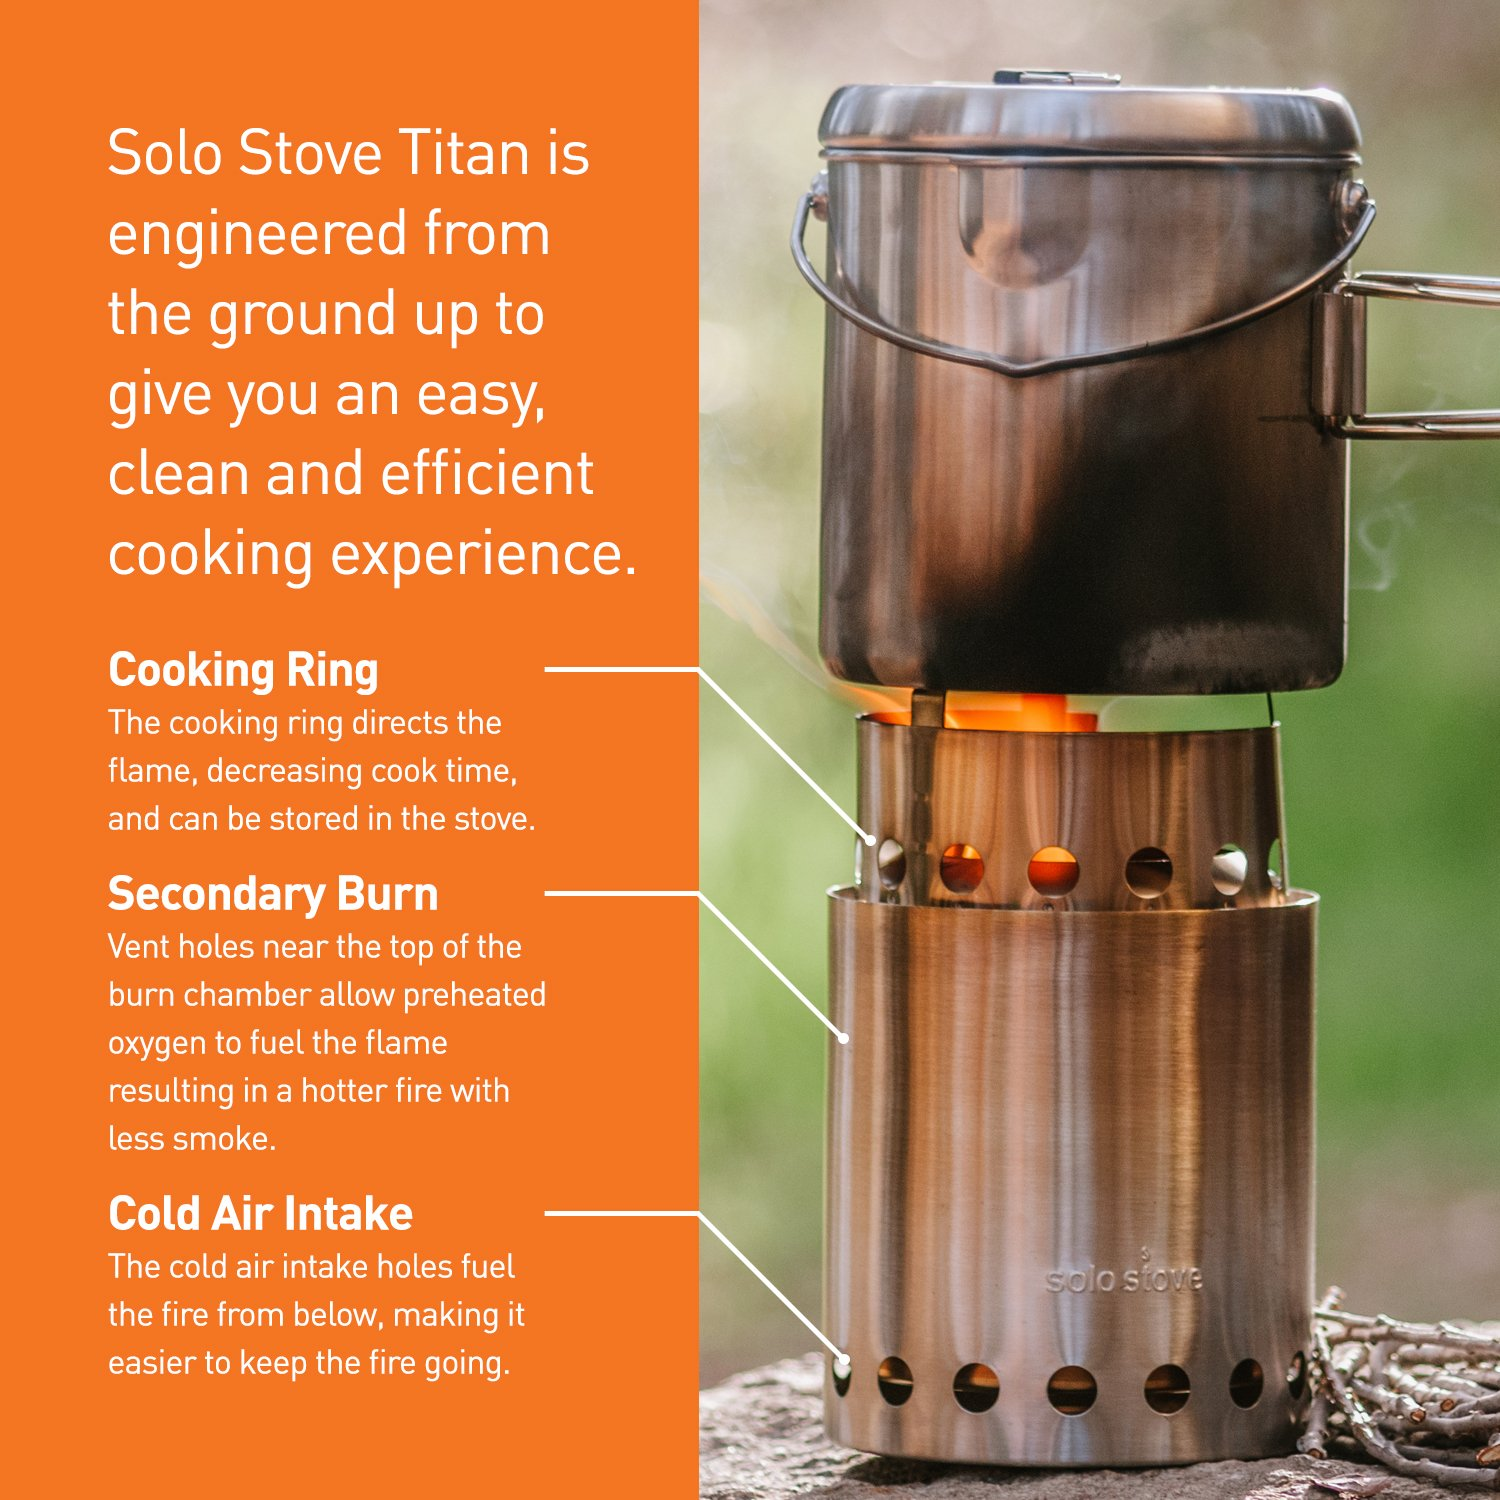 Solo Stove Titan & Solo Pot 1800 Camp Stove Combo: Woodburning Backpacking Stove Great for Camping and Survival by Solo Stove (Image #4)